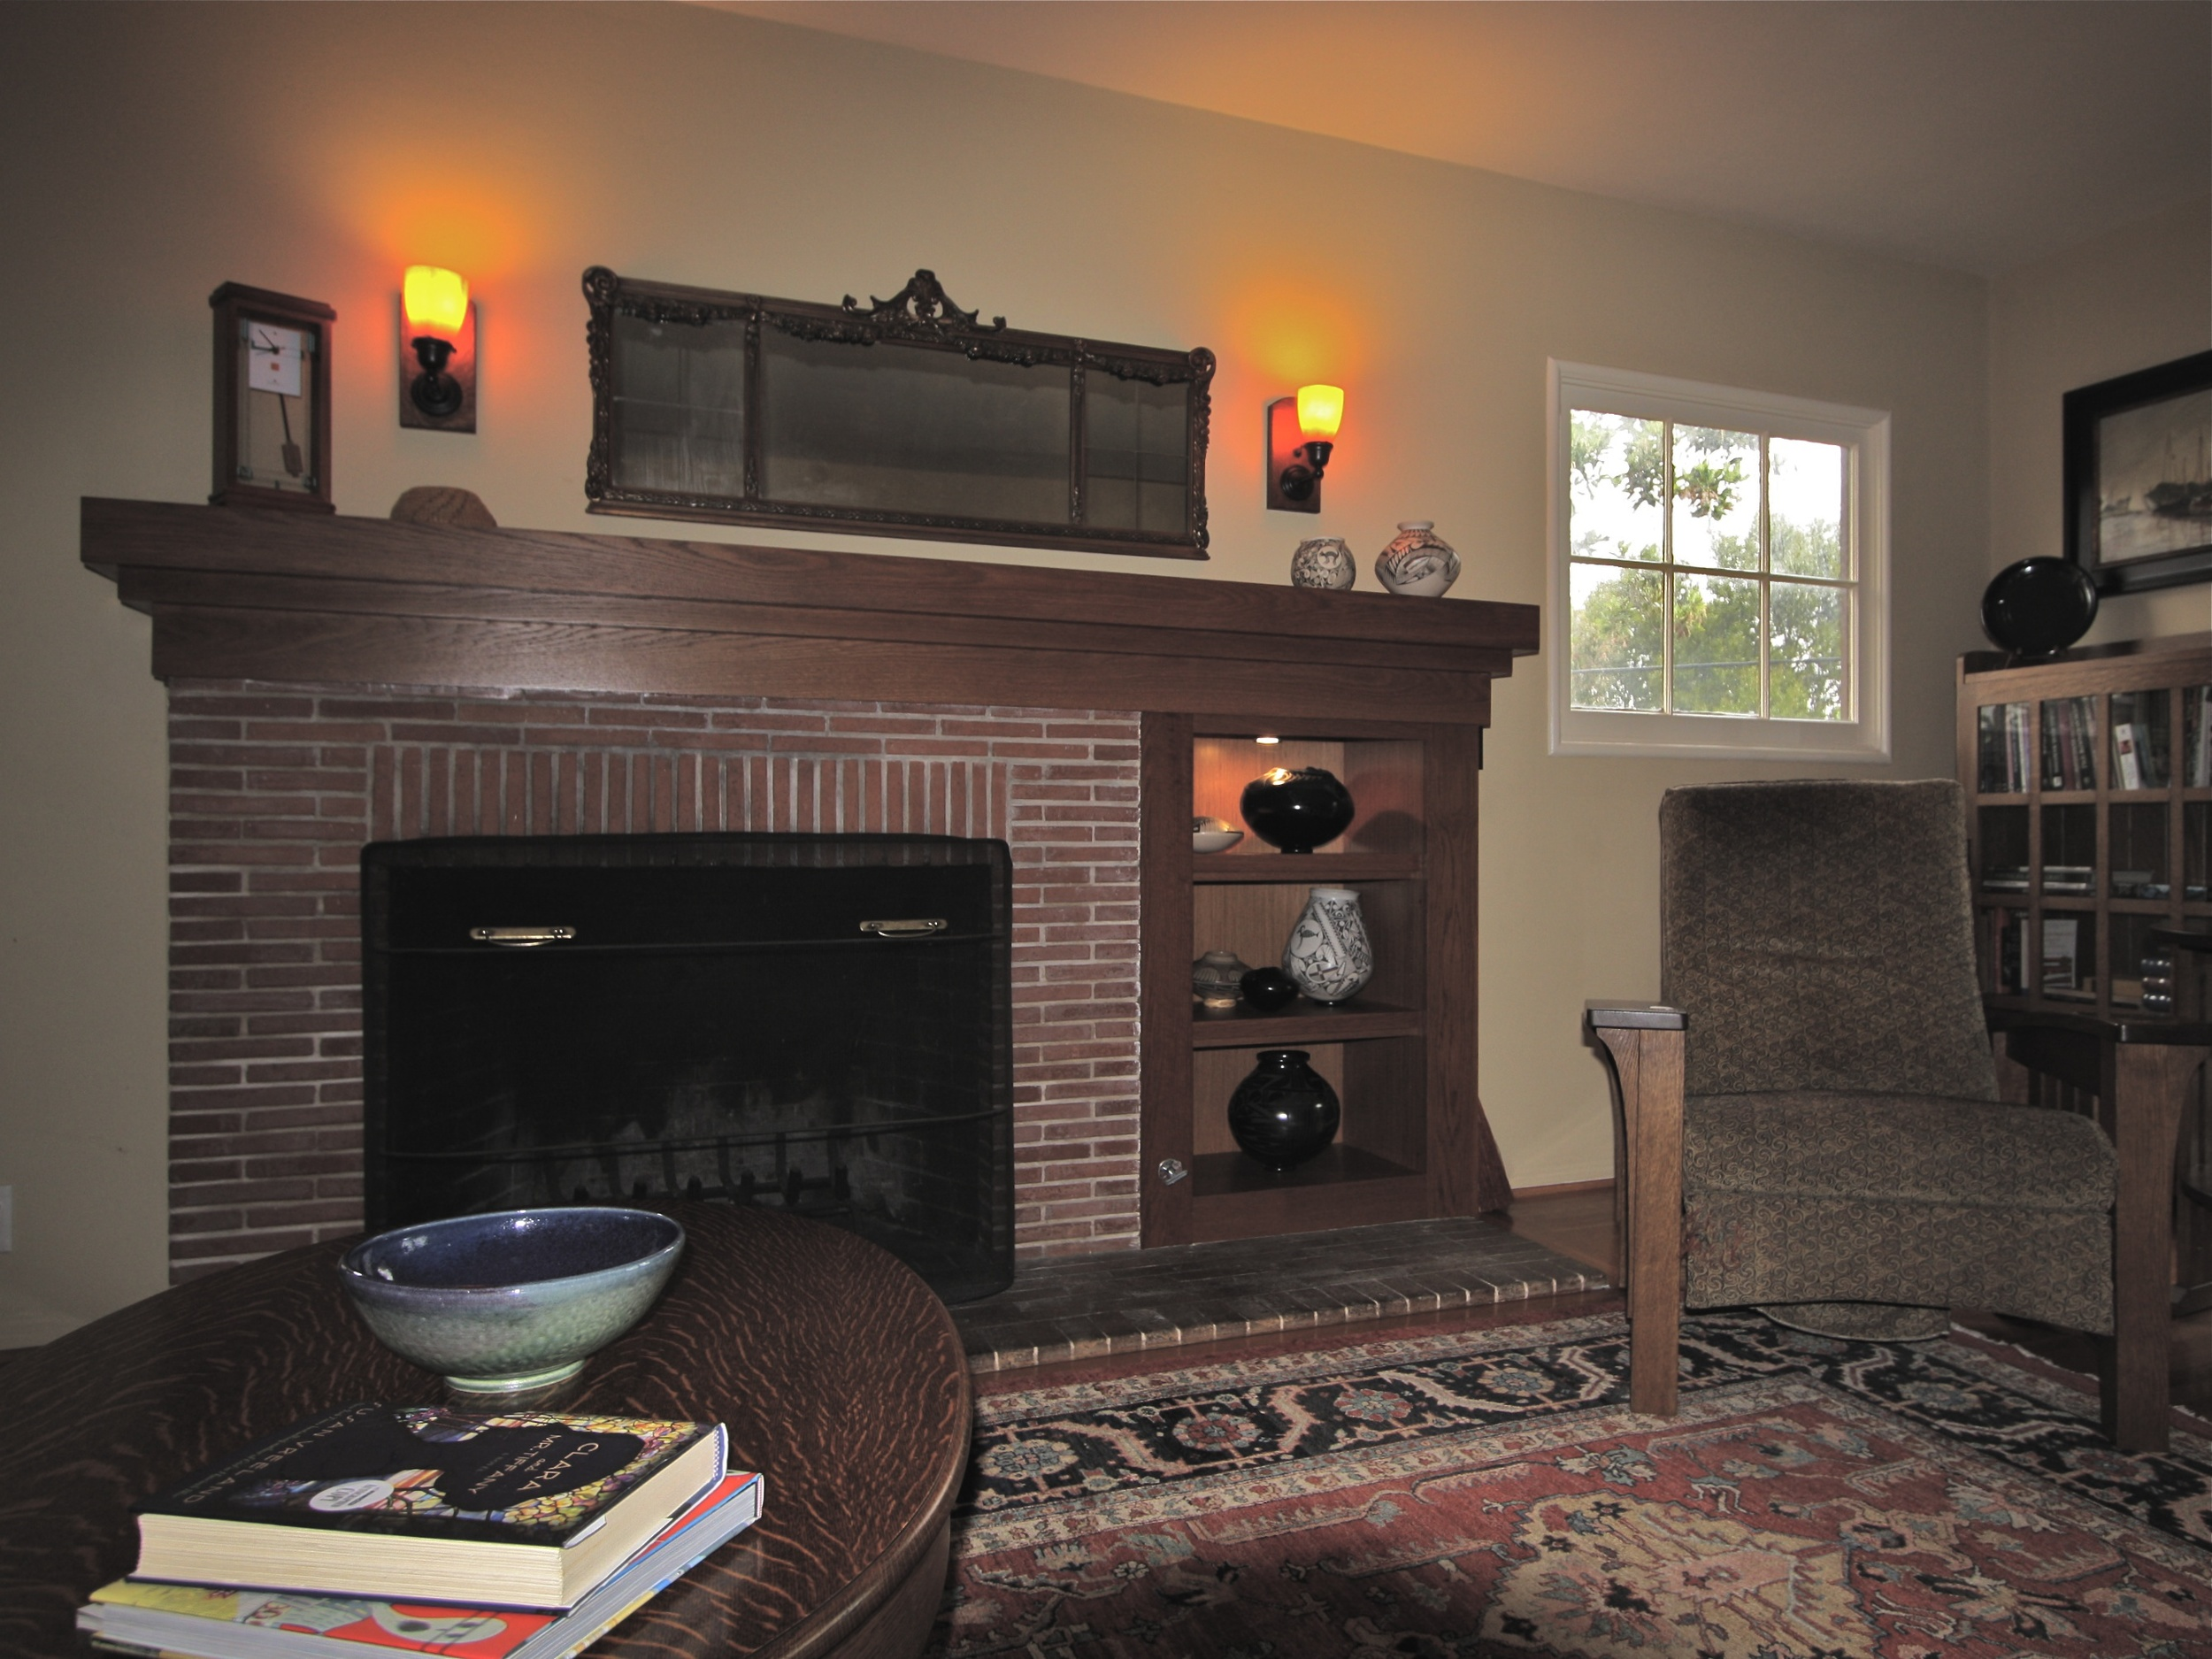 EAB Traditional Style Kitchen Remodel 8.jpg